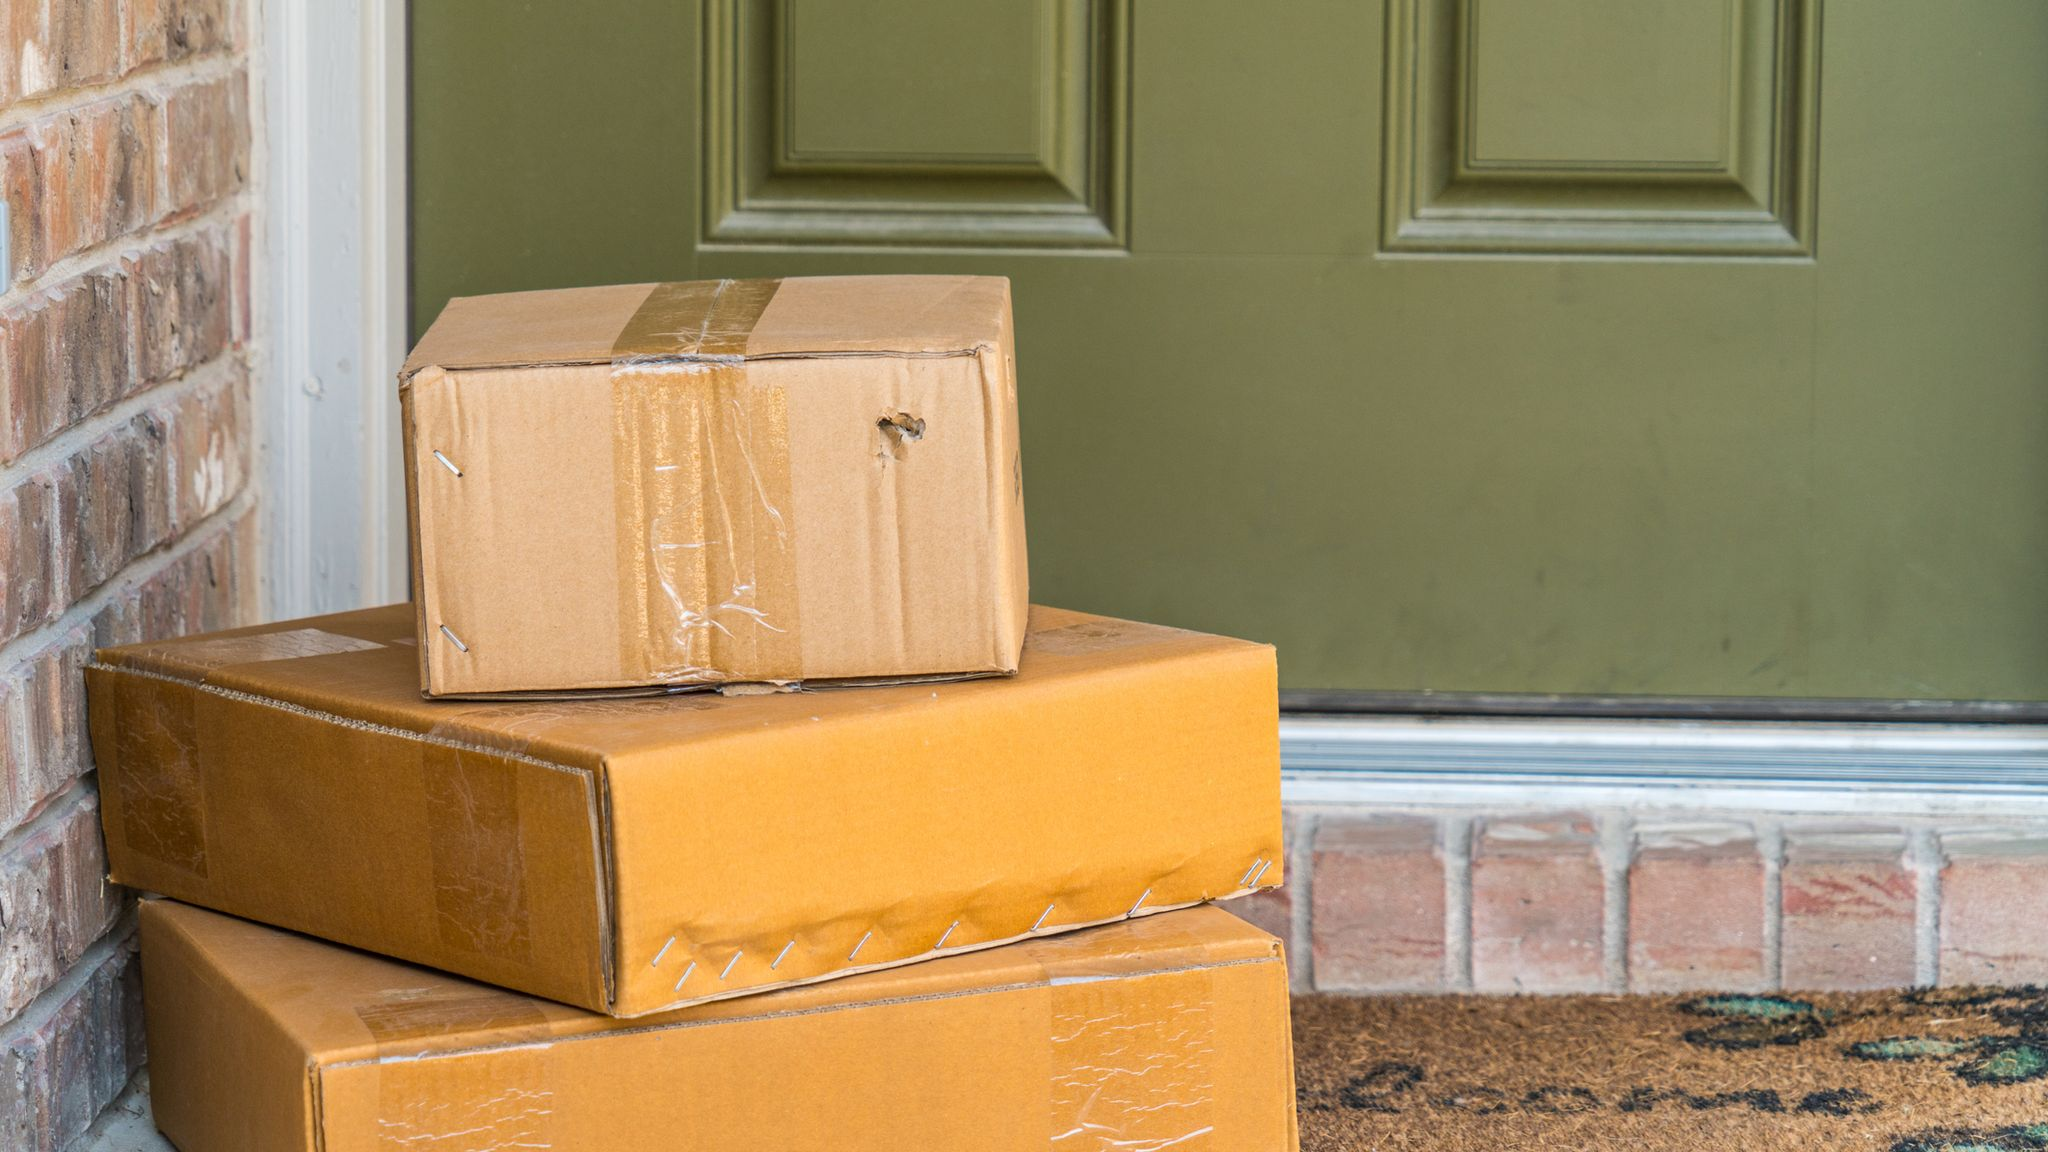 Christmas shopping: Parcel dropped in a toilet among delivery complaints